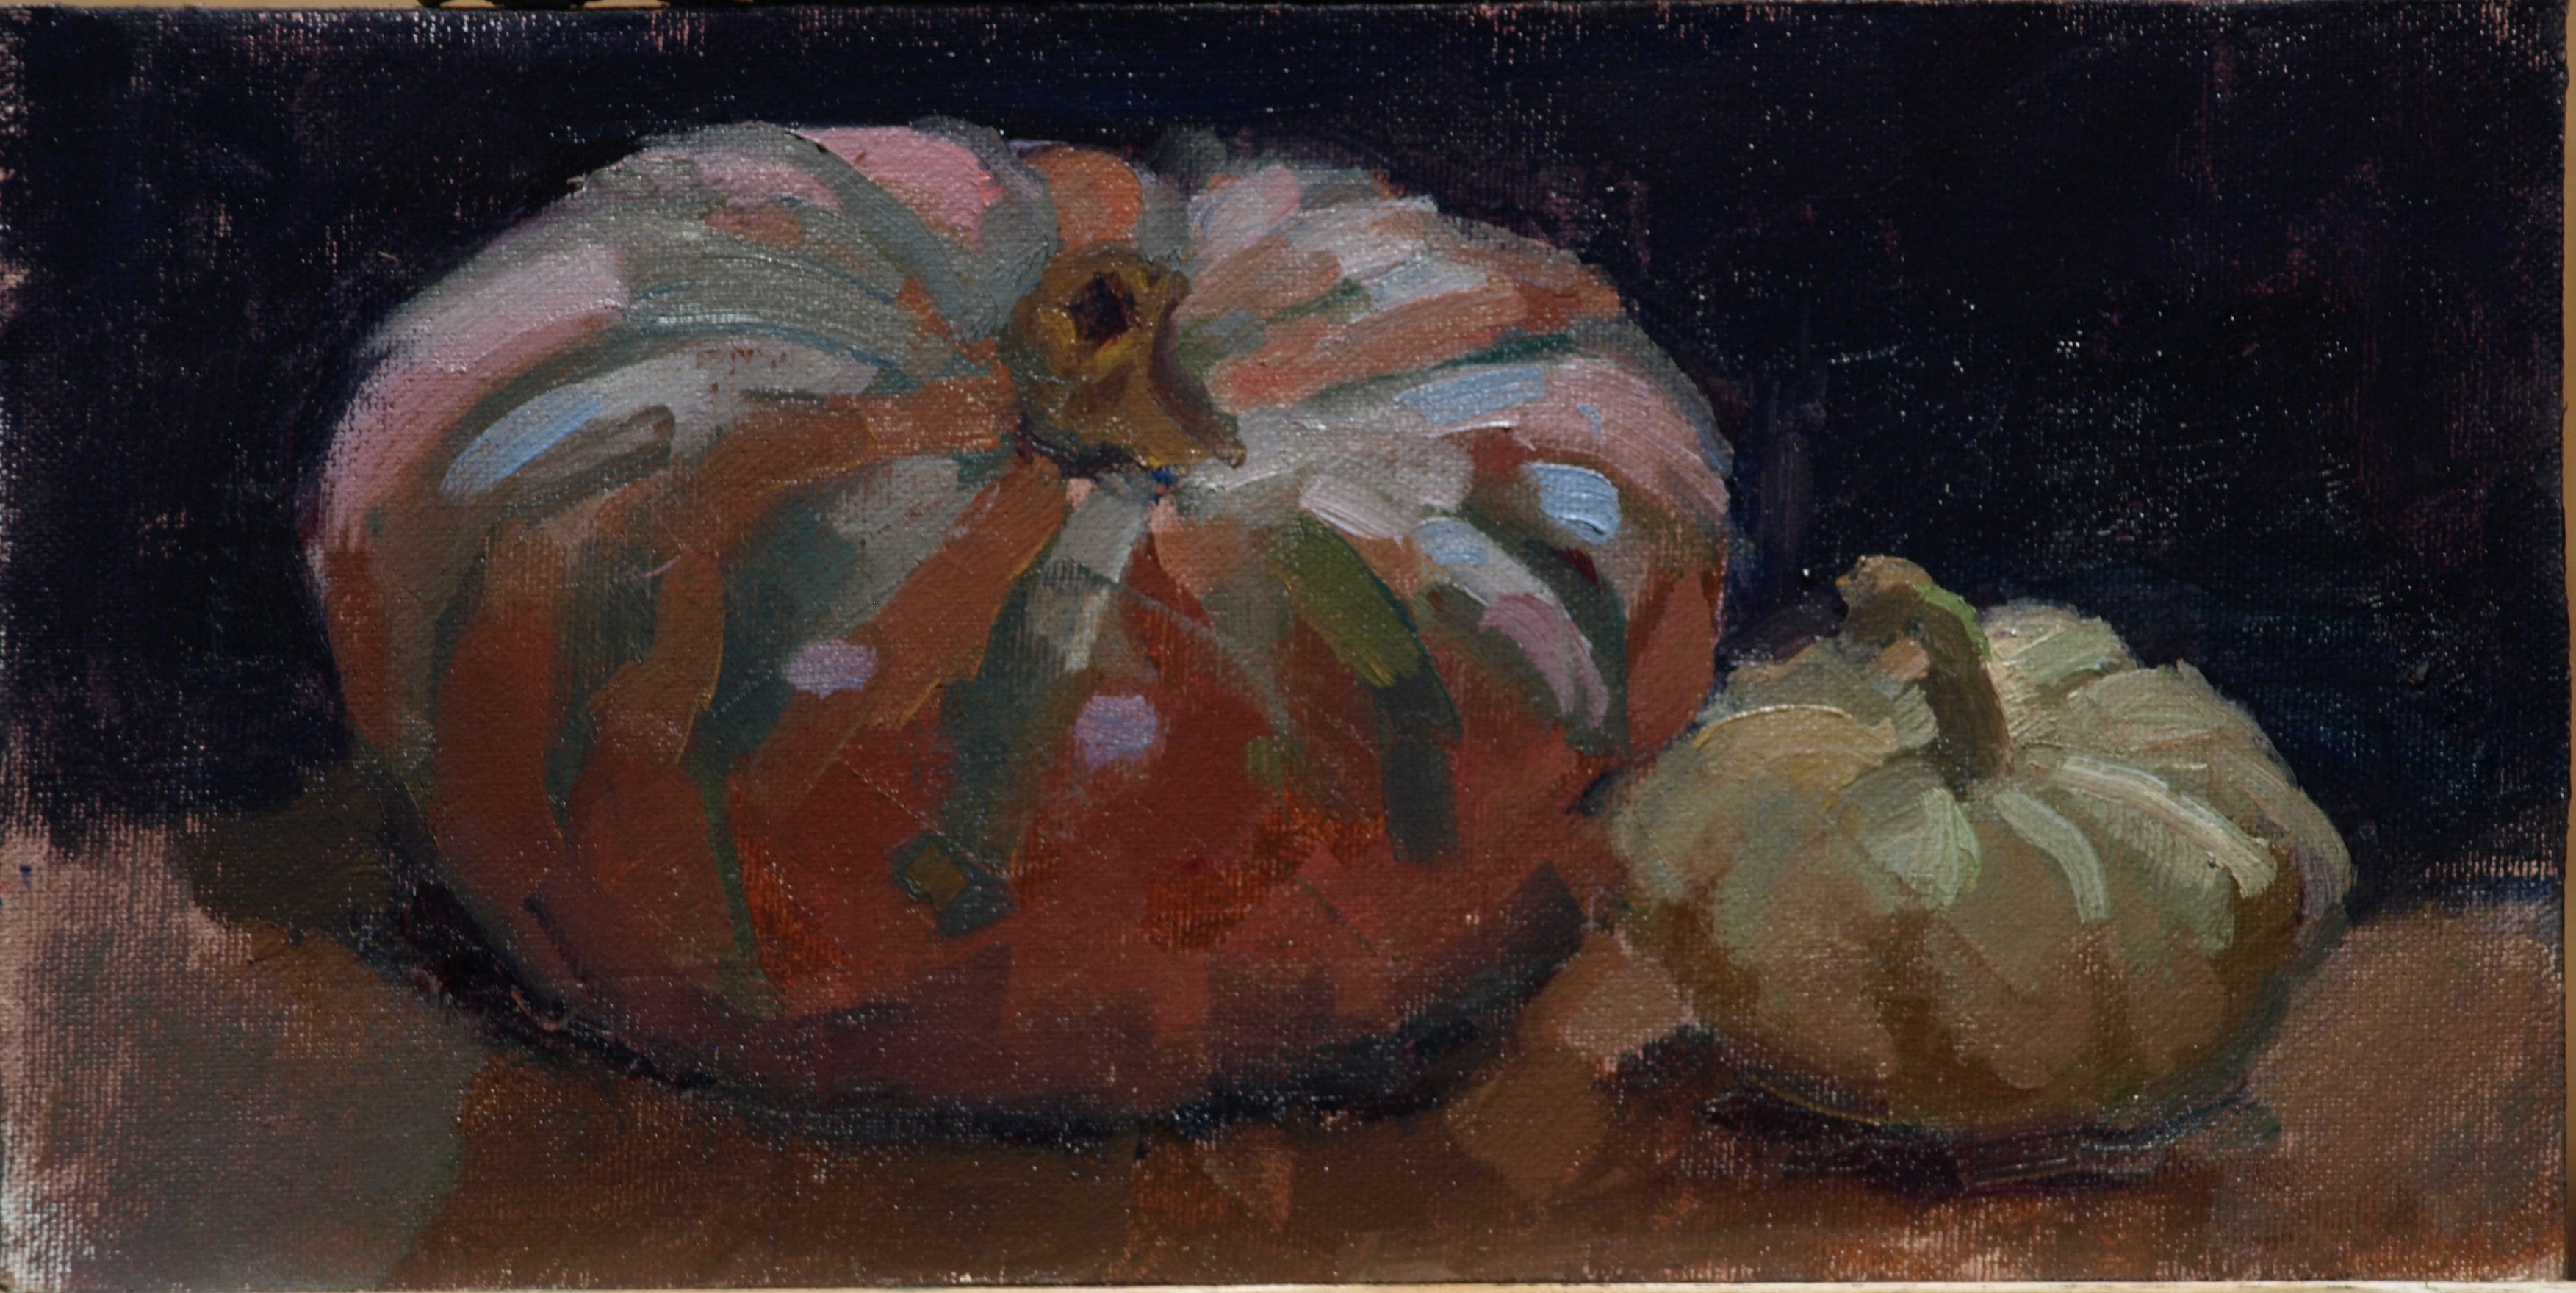 Heirloom Squash, Oil on Canvas on Panel, 6 x 12 Inches, by Susan Grisell, $150